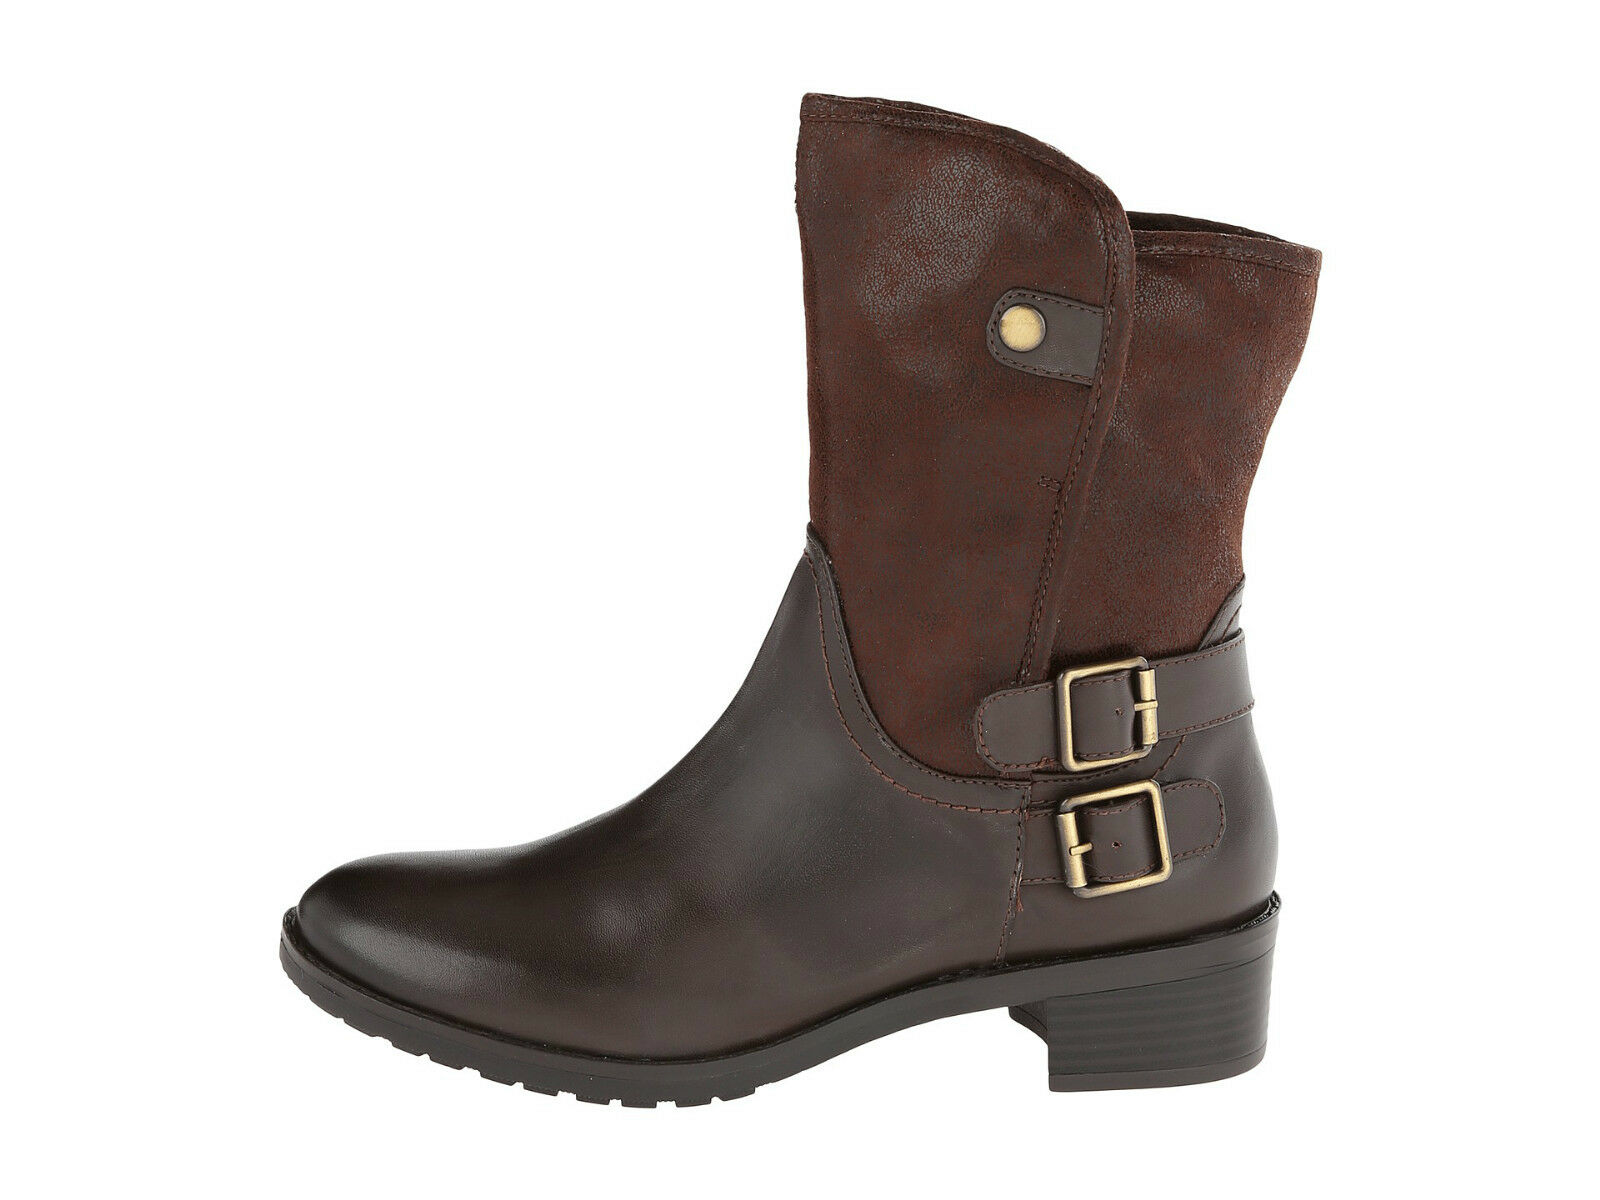 129 Naturalizer Women Metro Brown Faux Leather Motorcycle Style Boot sz 5.5M